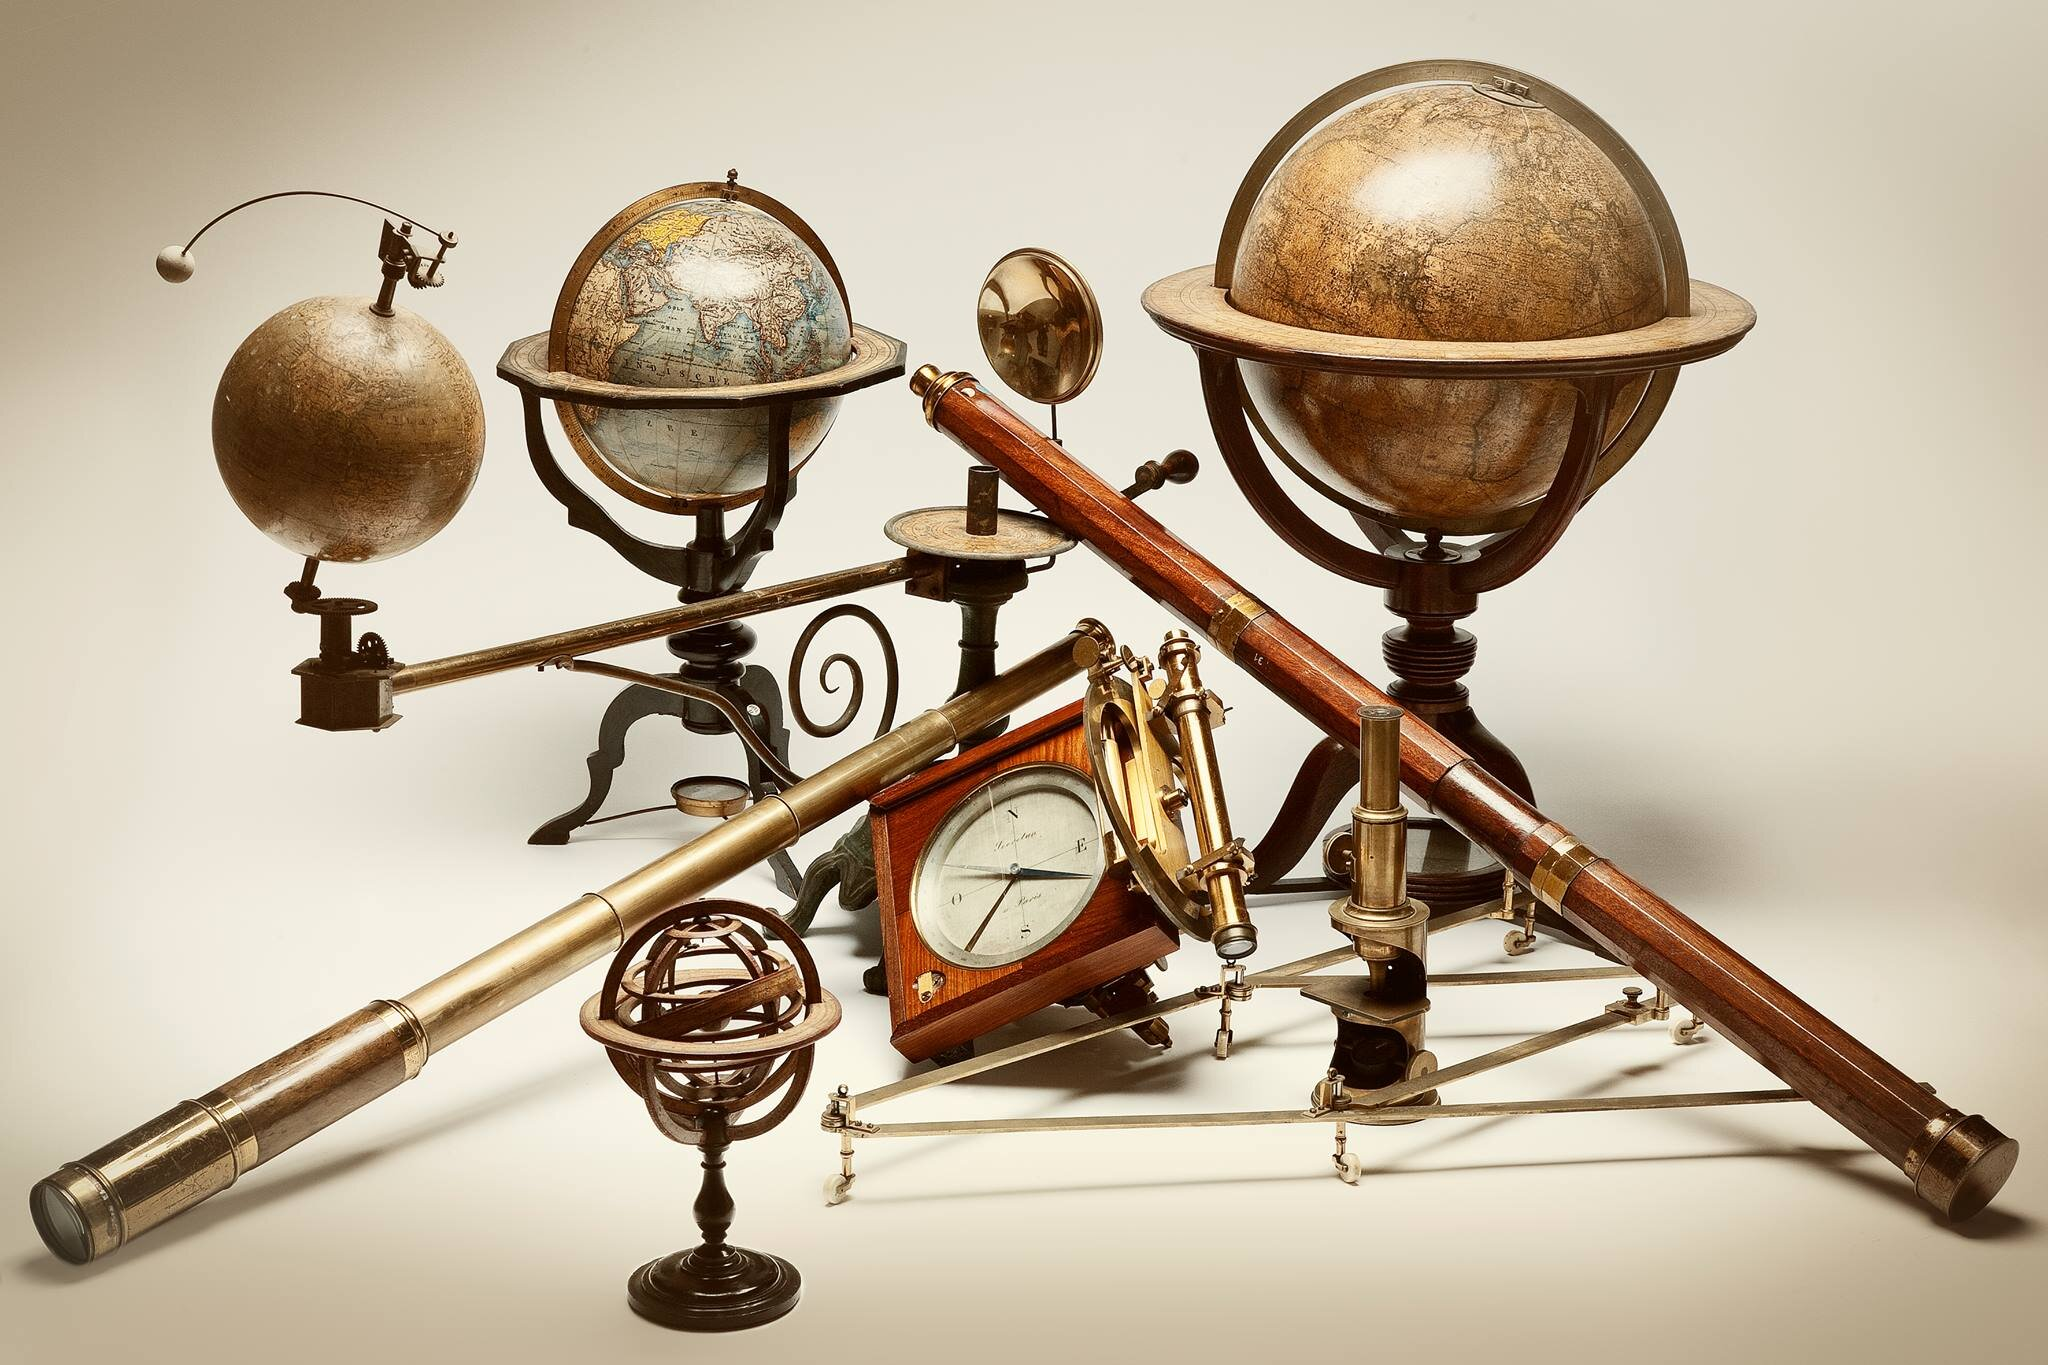 Every year  Il Segno del Tempo SLR  travels from Milano to exhibit an array of European objects of art, curiosities, and canes.